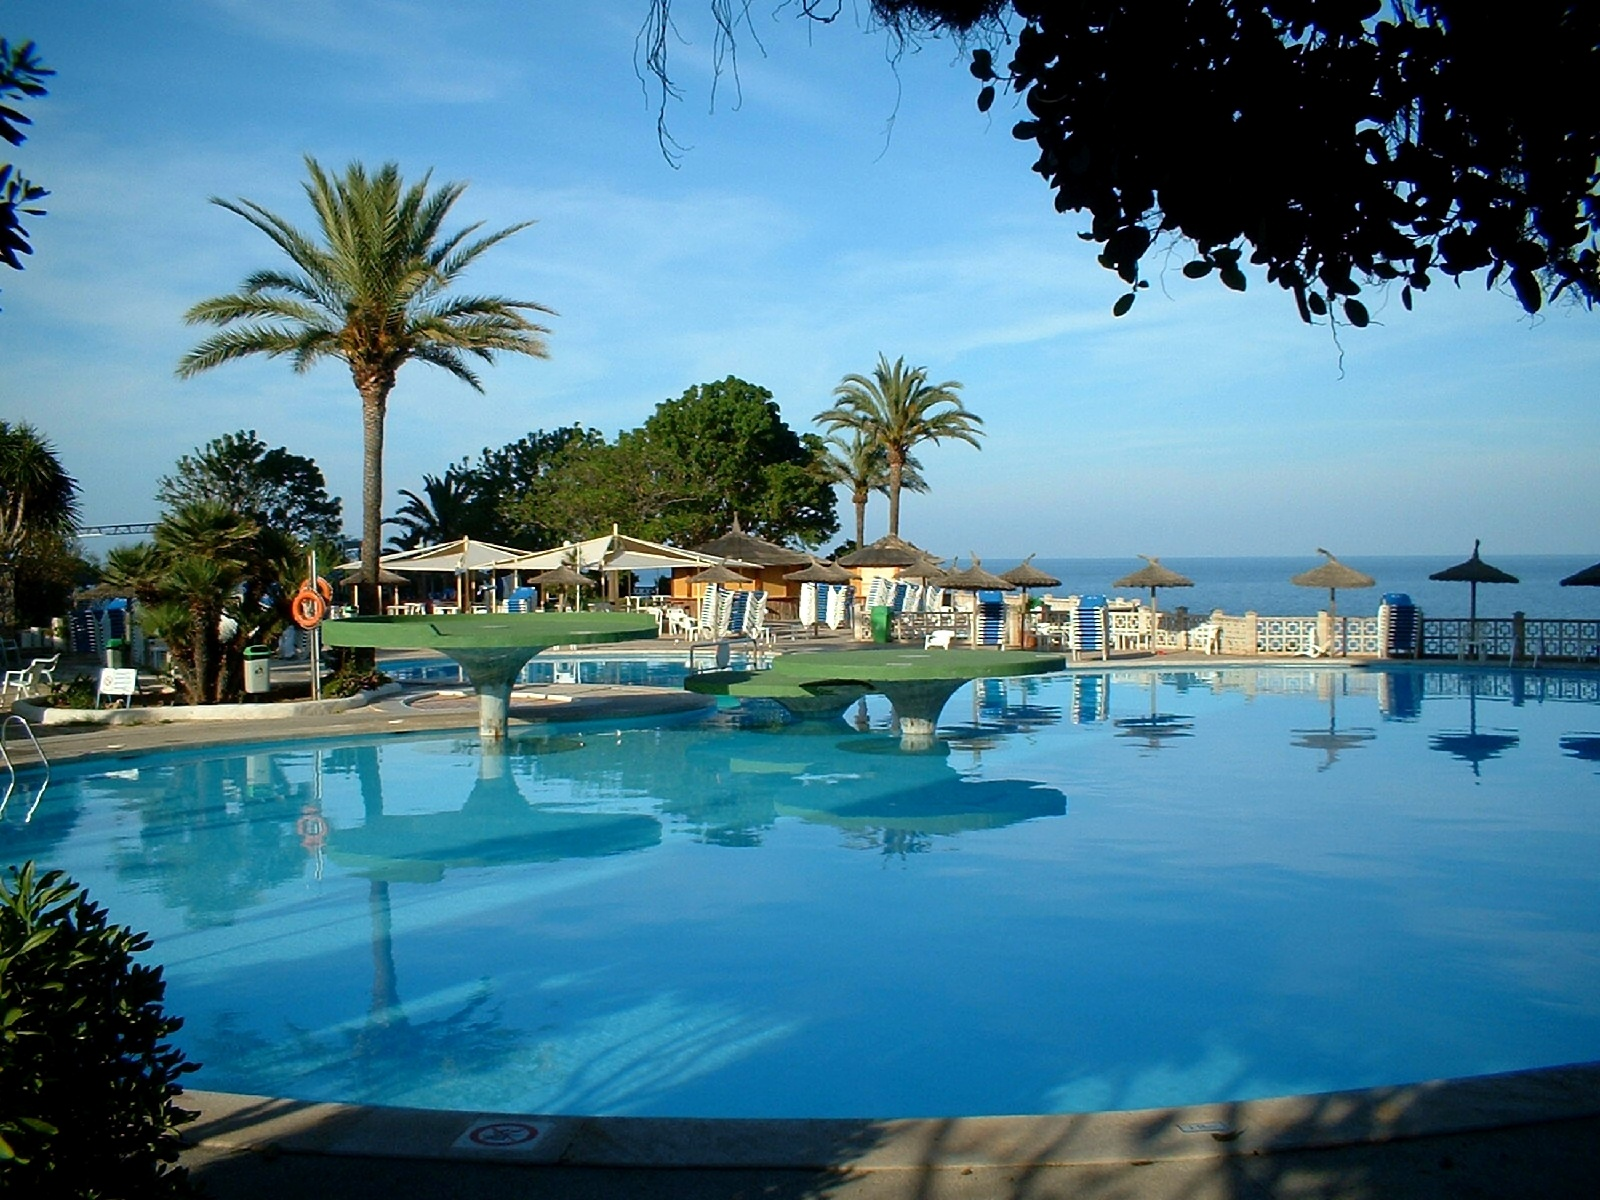 Property for sale in Spain, villas to rent and holiday homes